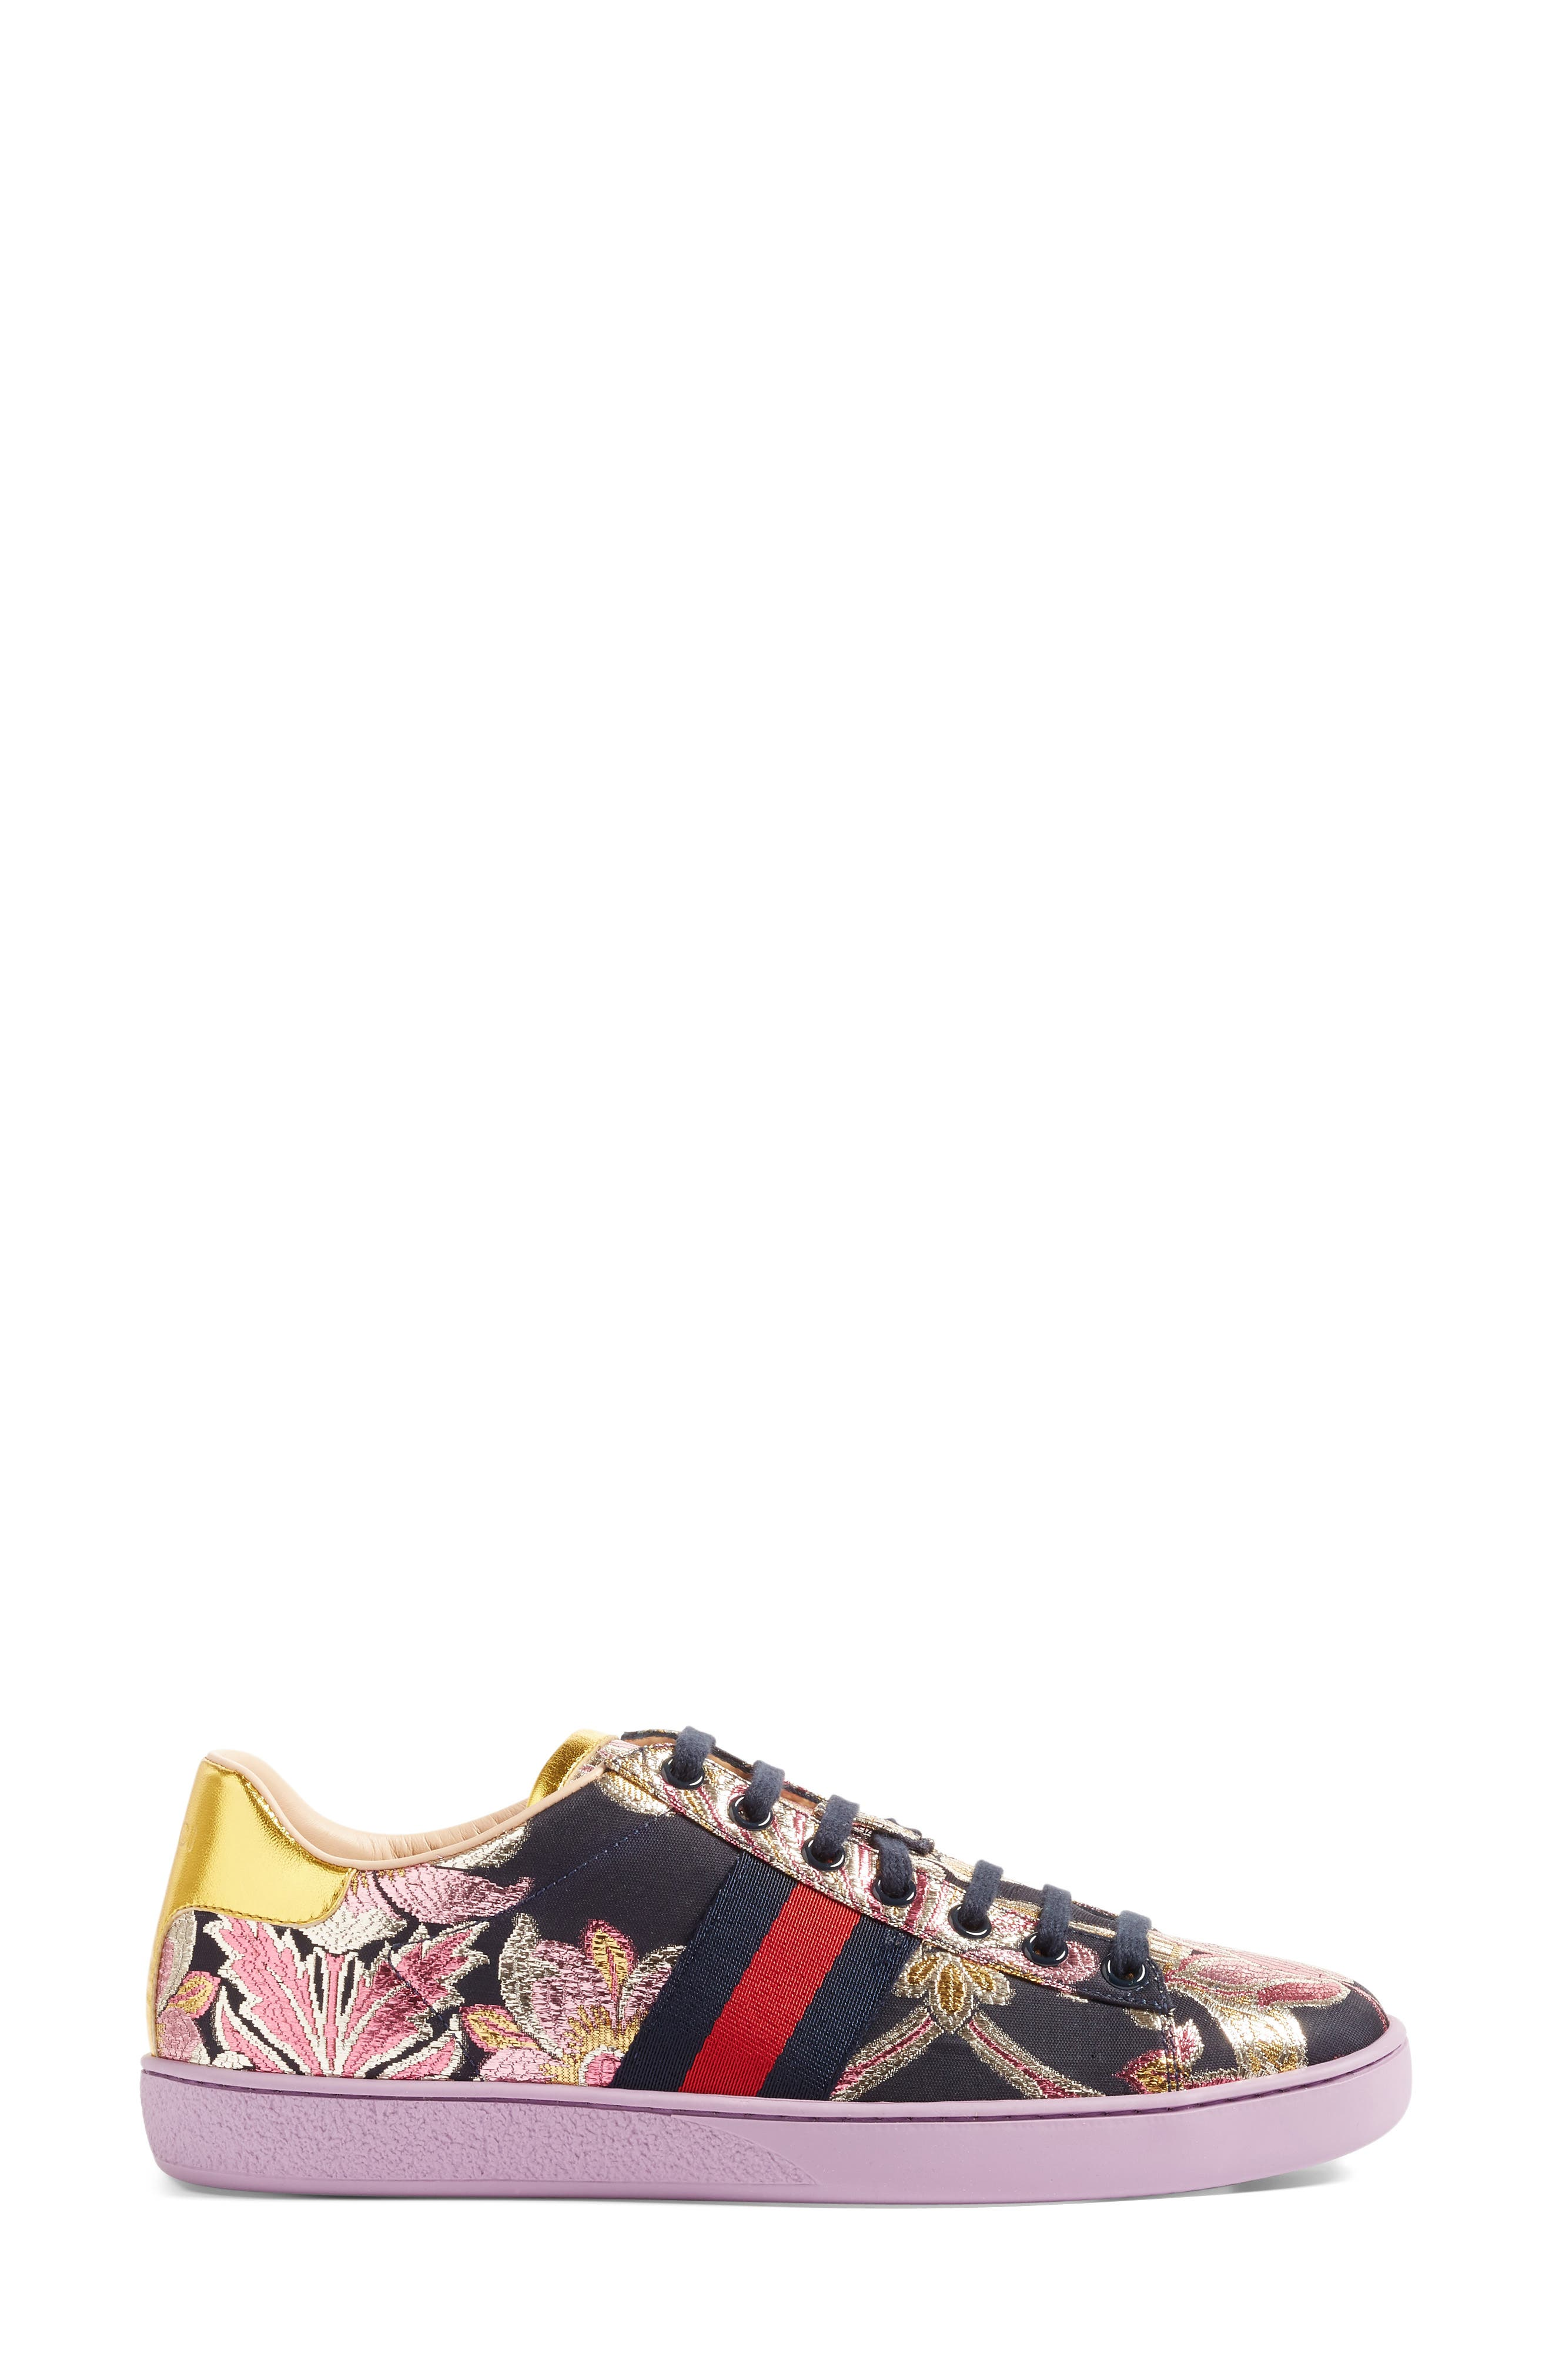 Alternate Image 4  - Gucci New Ace Floral Sneaker (Women)